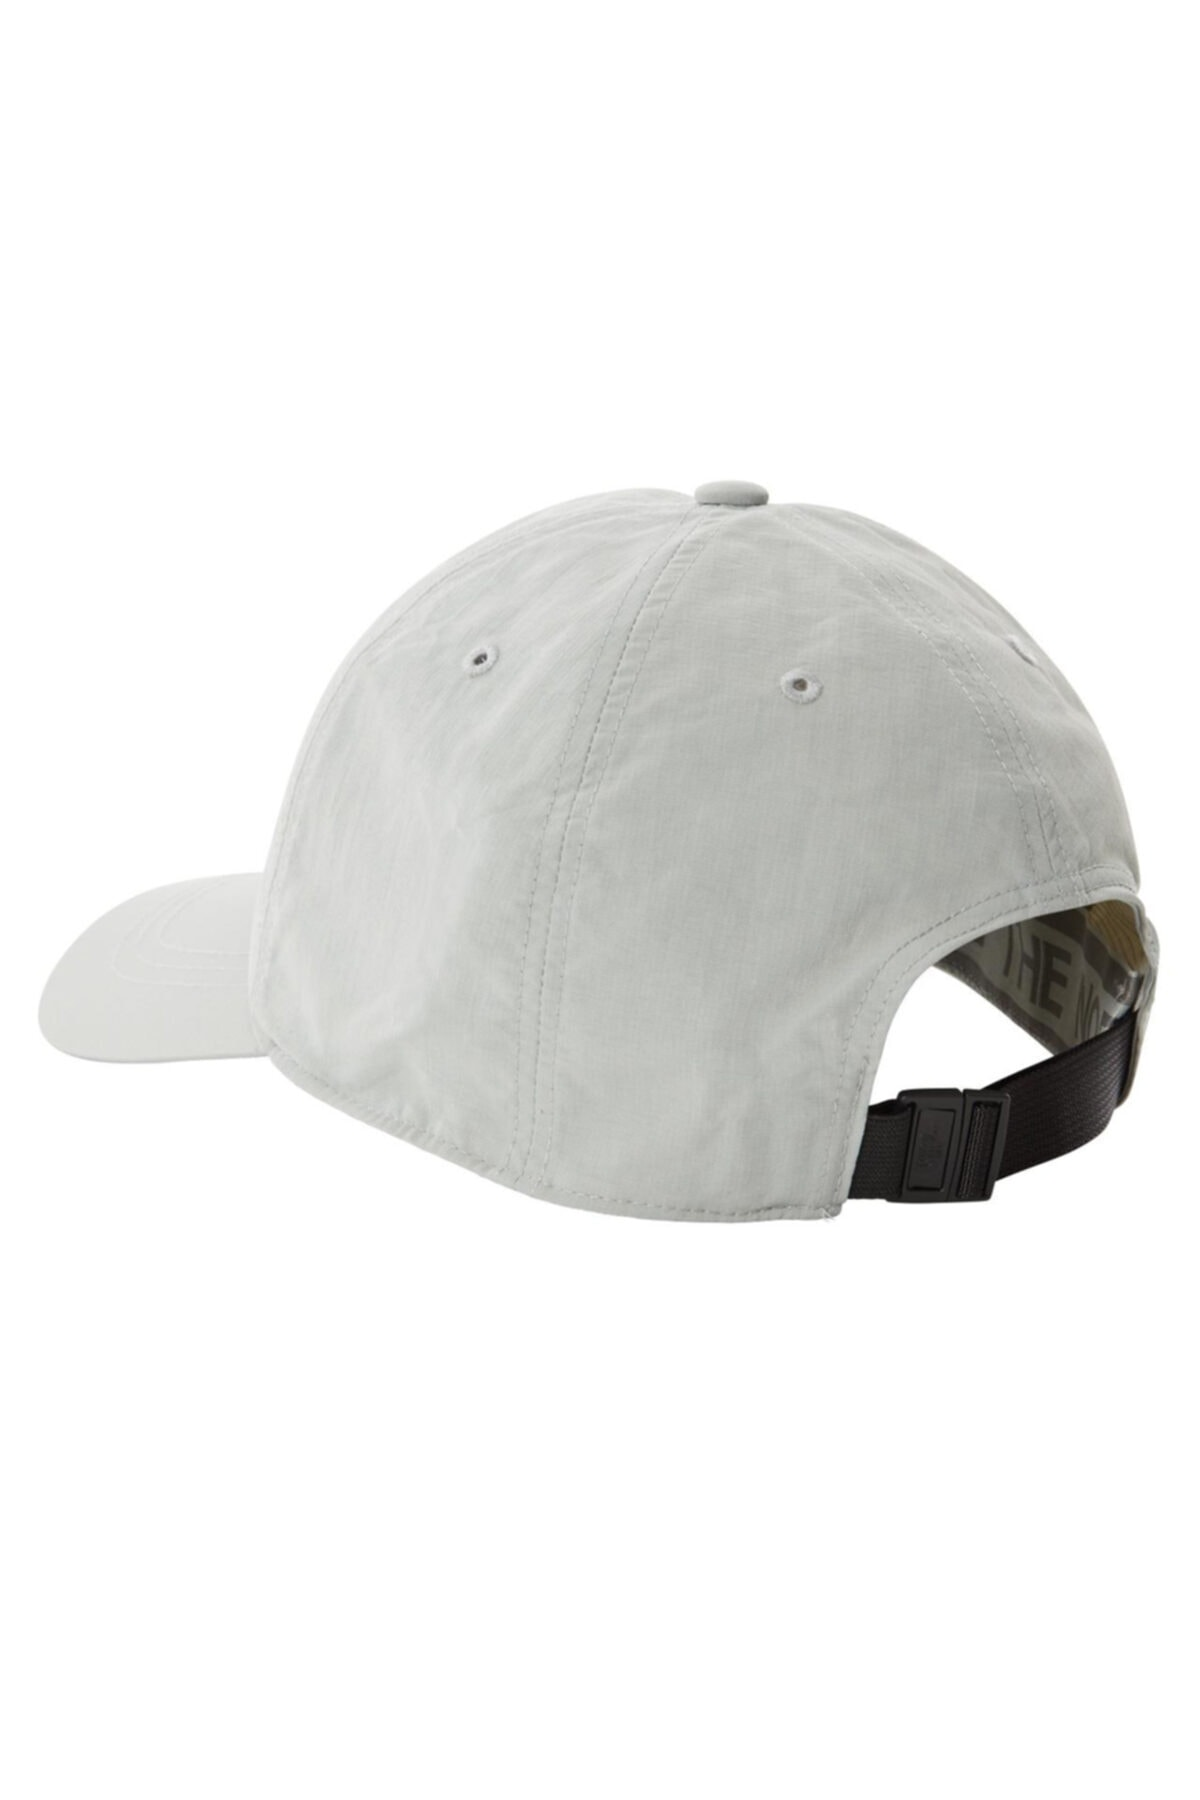 THE NORTH FACE Horizon Hat Unisex Gri Outdoor Şapka Nf00cf7whdf1 2